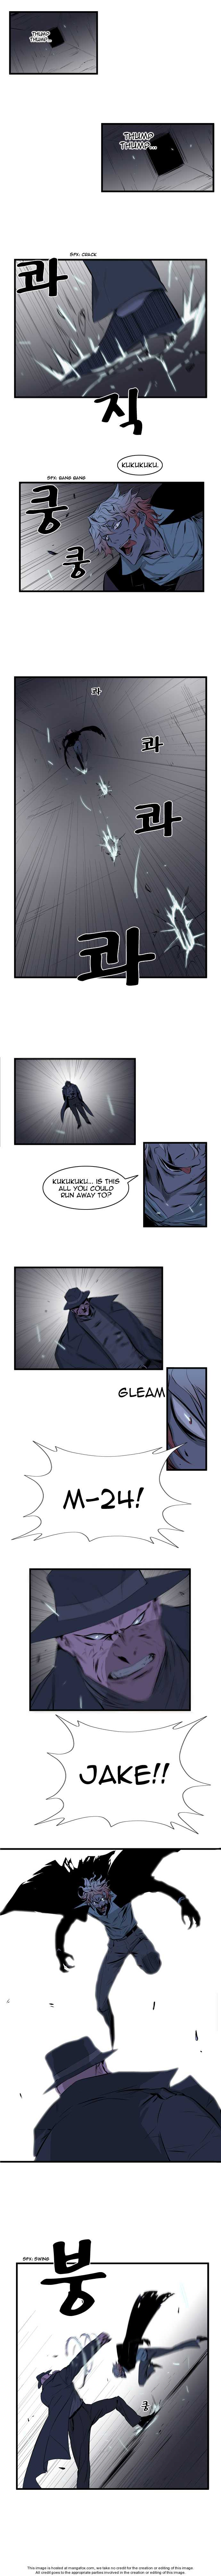 Noblesse 72 Page 2